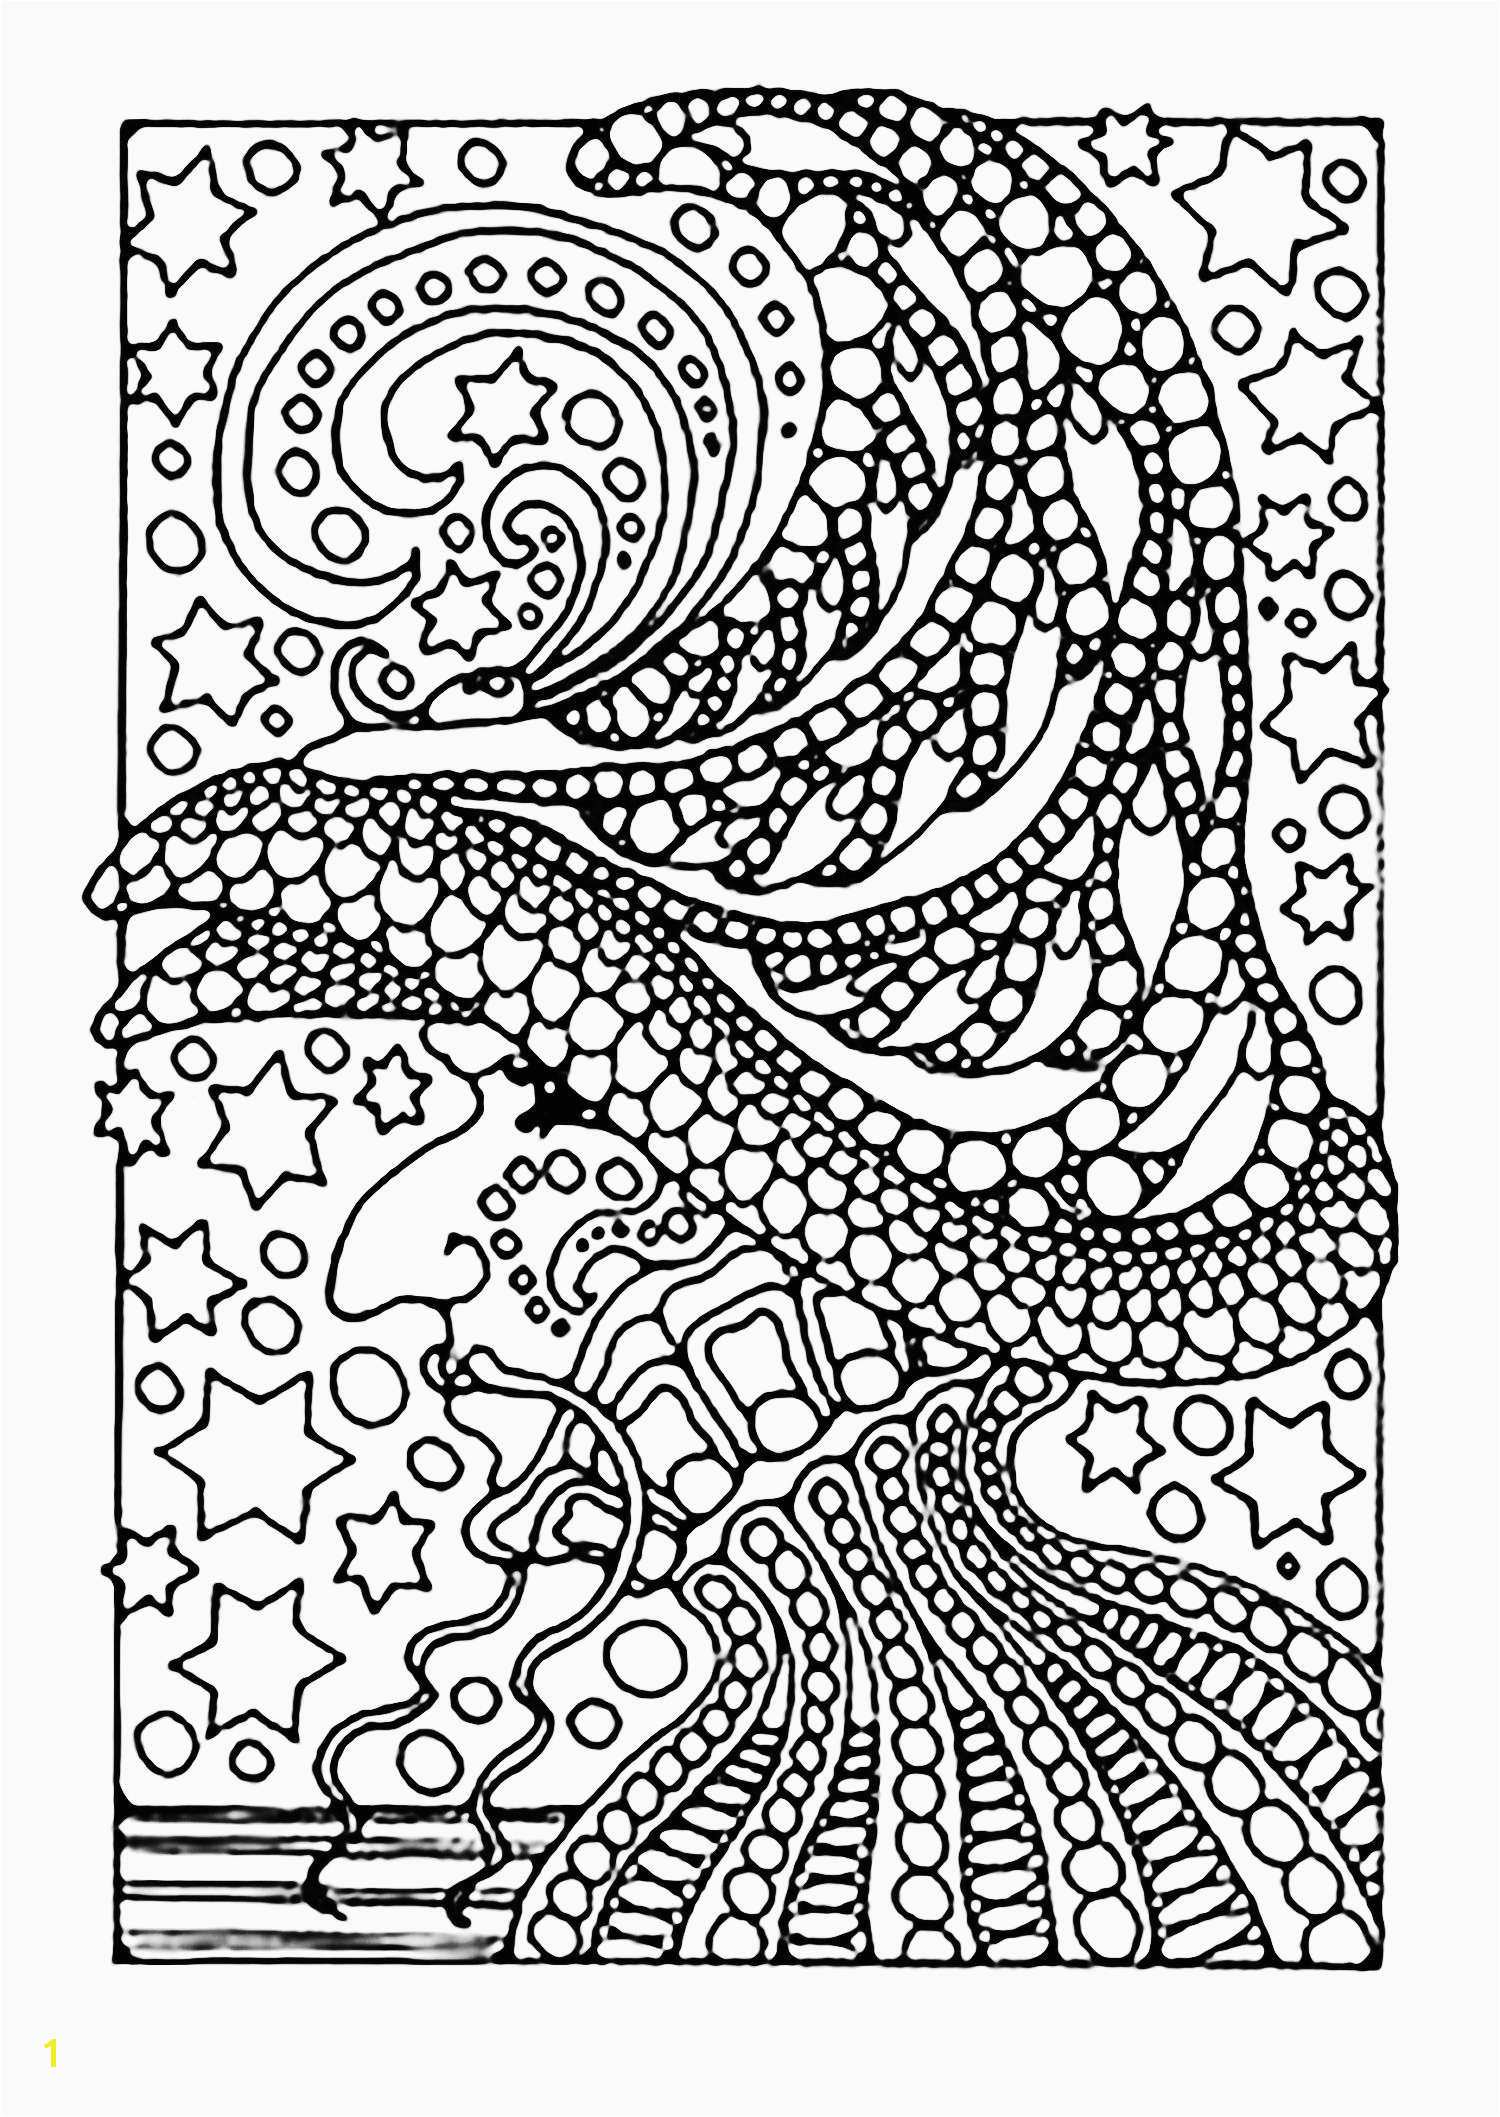 Thank You Coloring Pages Coloring Pages Christmas Baby Jesus Cool Coloring Page Unique Witch Coloring